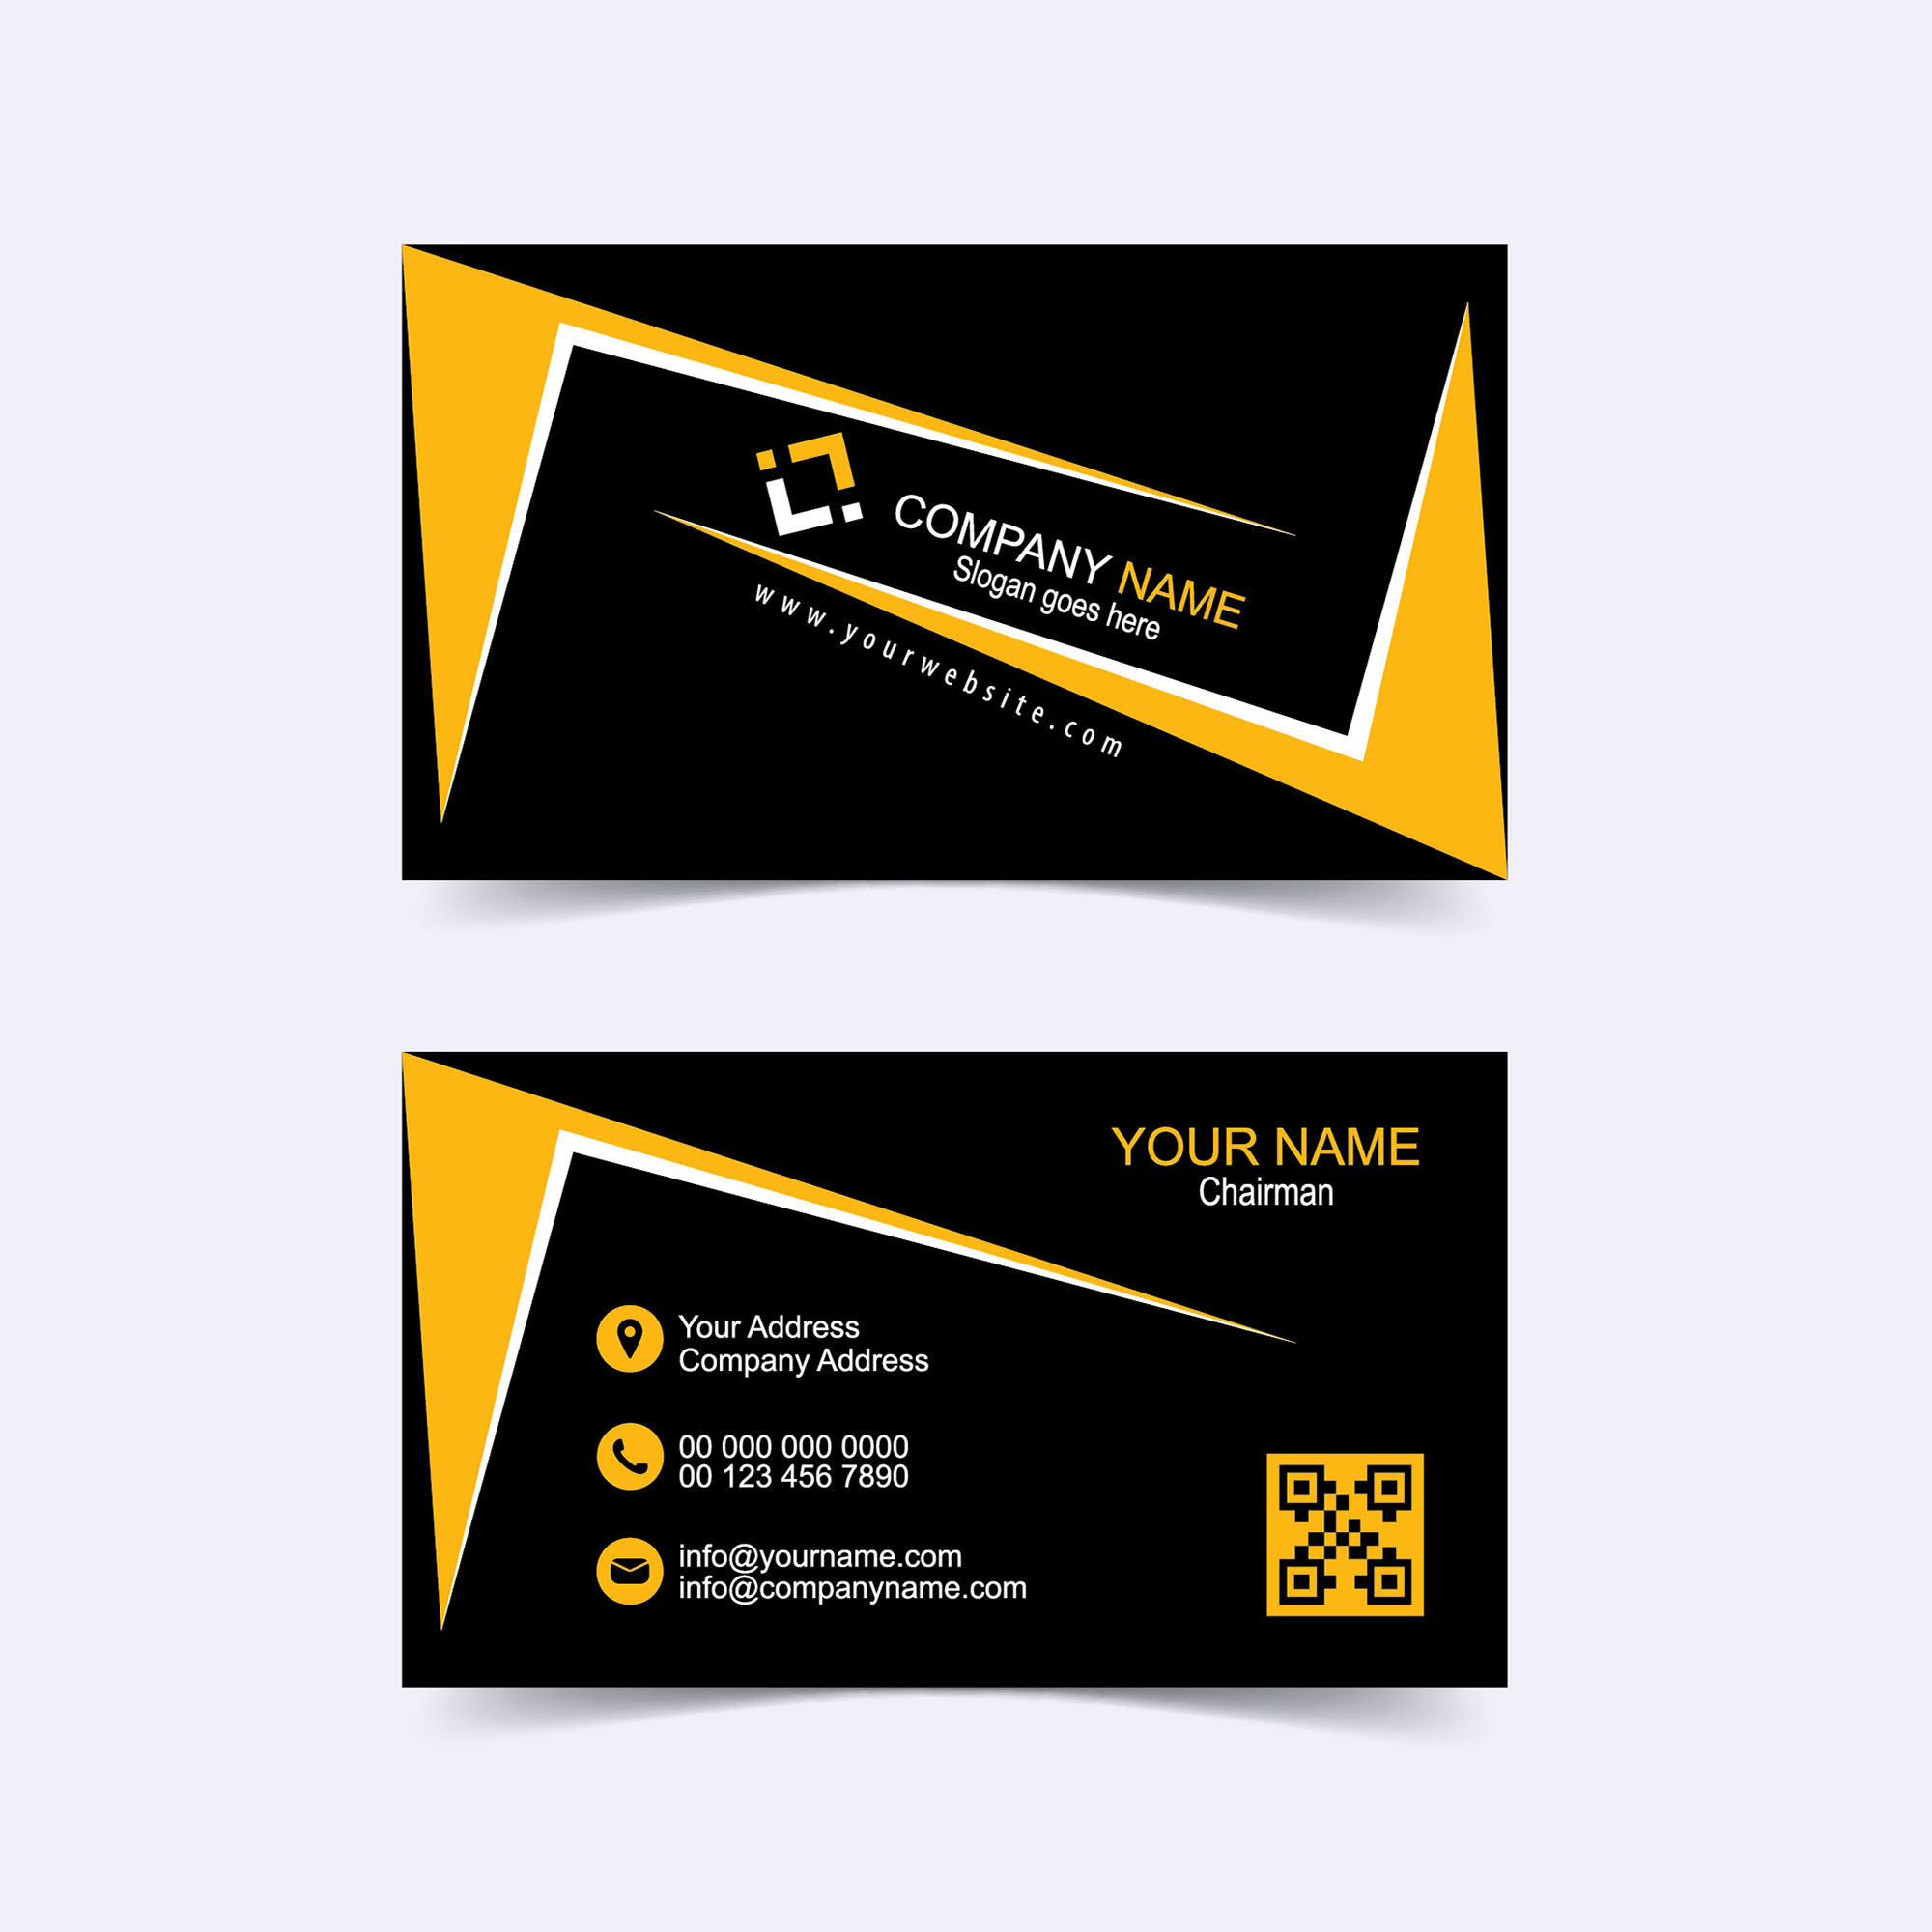 Modern business card template vector free download wisxi business card business cards business card design business card template design templates wajeb